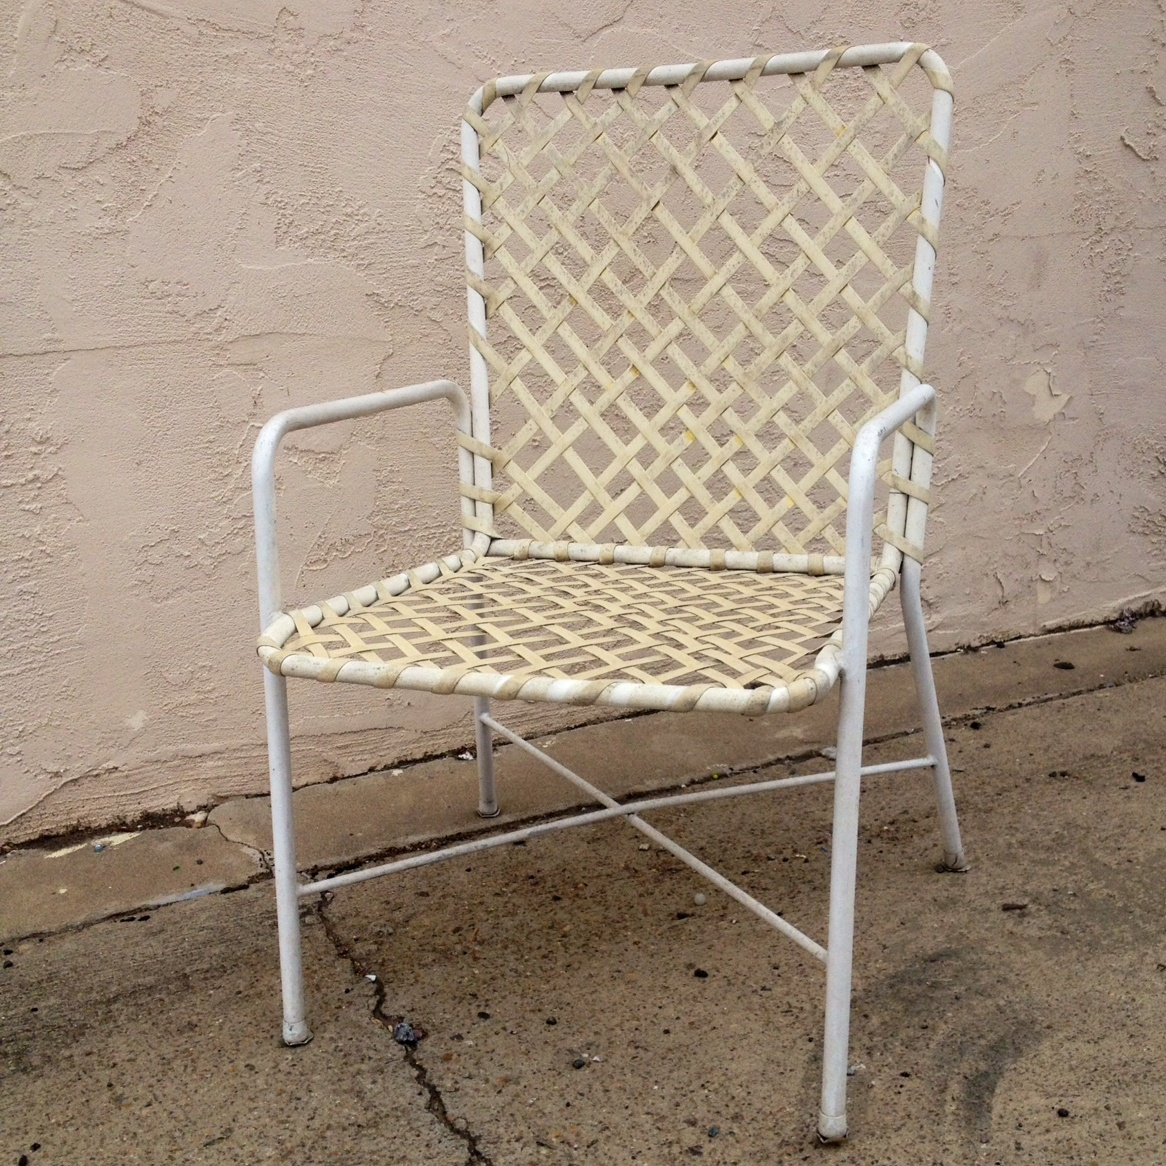 patio chair repair vinyl strap baby bath strapping  quality interiors